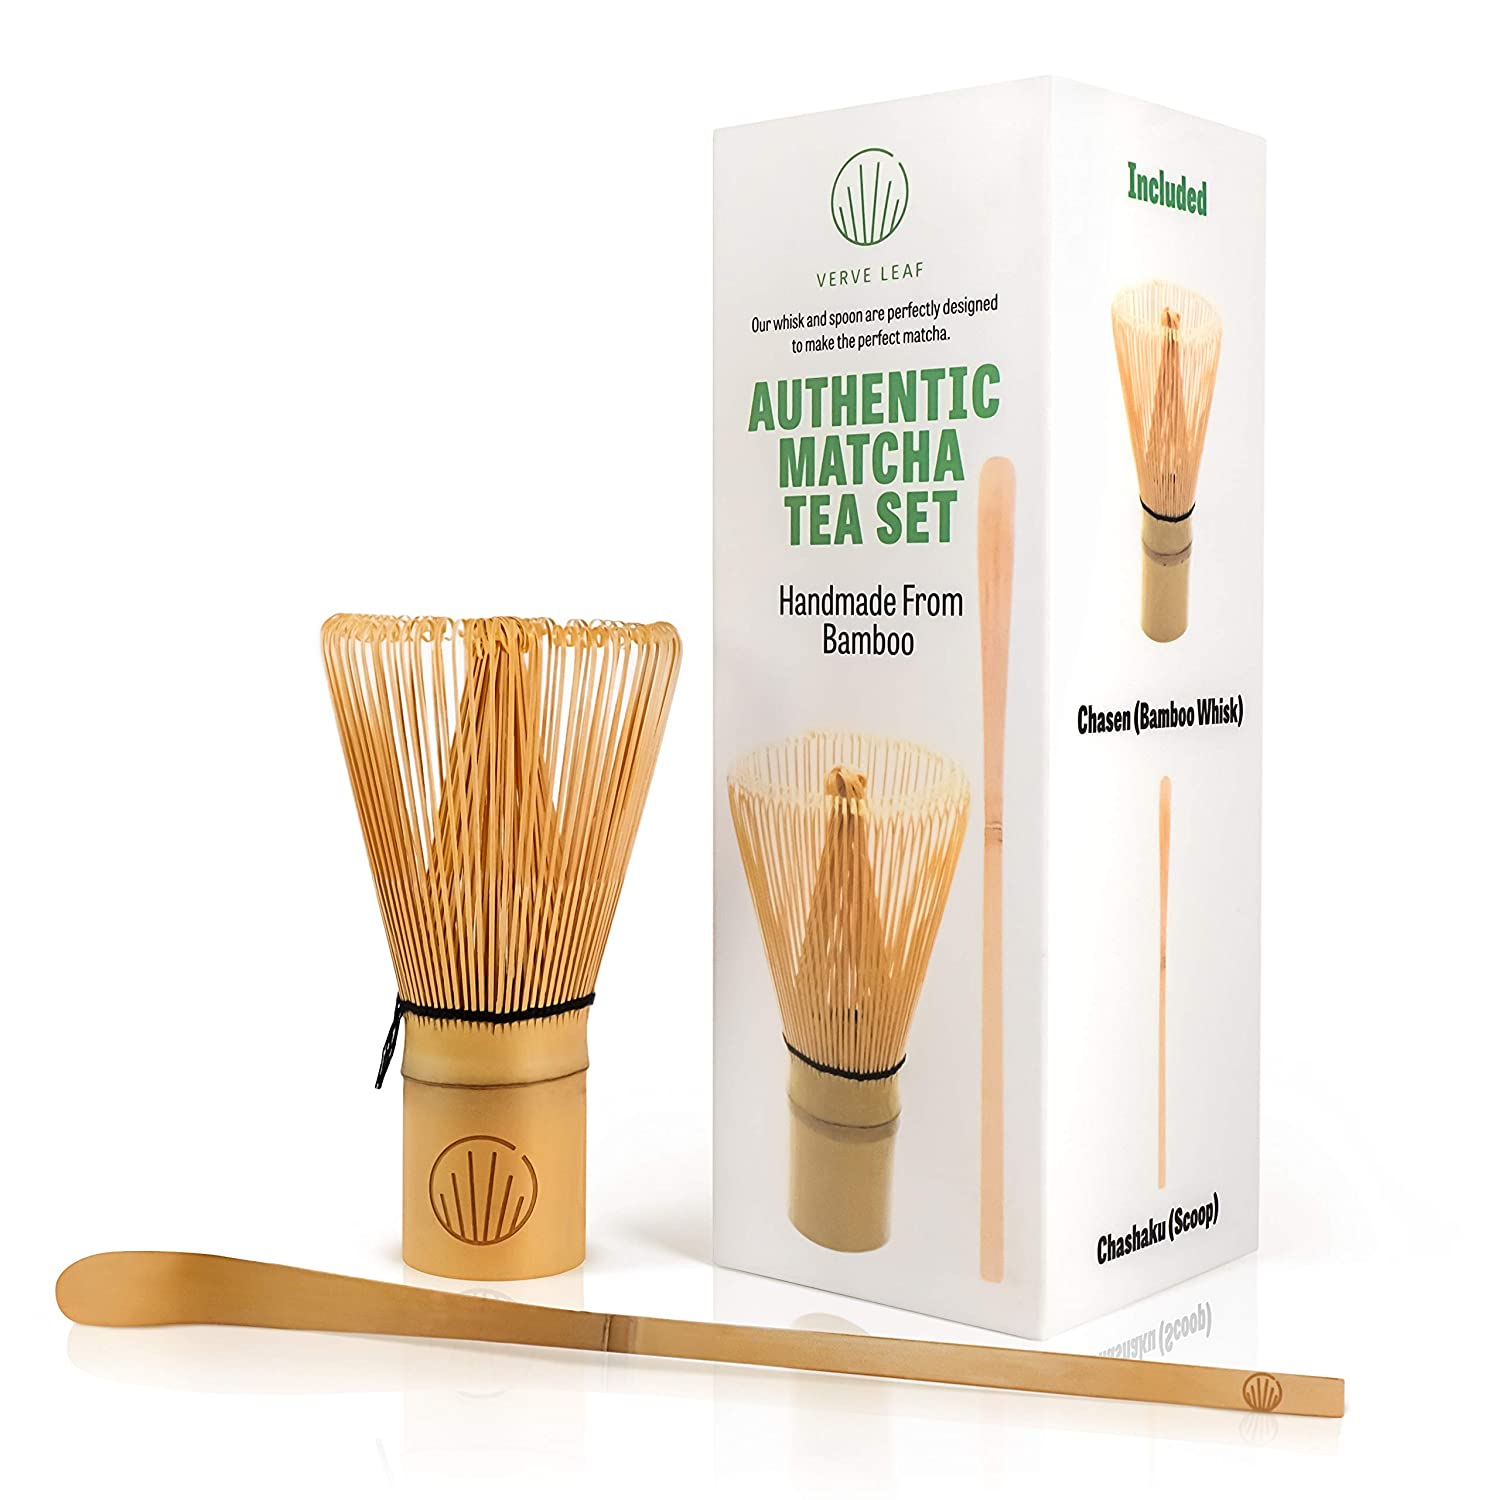 Verve leaf Bamboo Matcha Whisk & Scoop (Chasen and Chashaku) - Makes Frothy and Creamy Matcha - NO MORE CLUMPS and no more wasted matcha! JustPuriTea